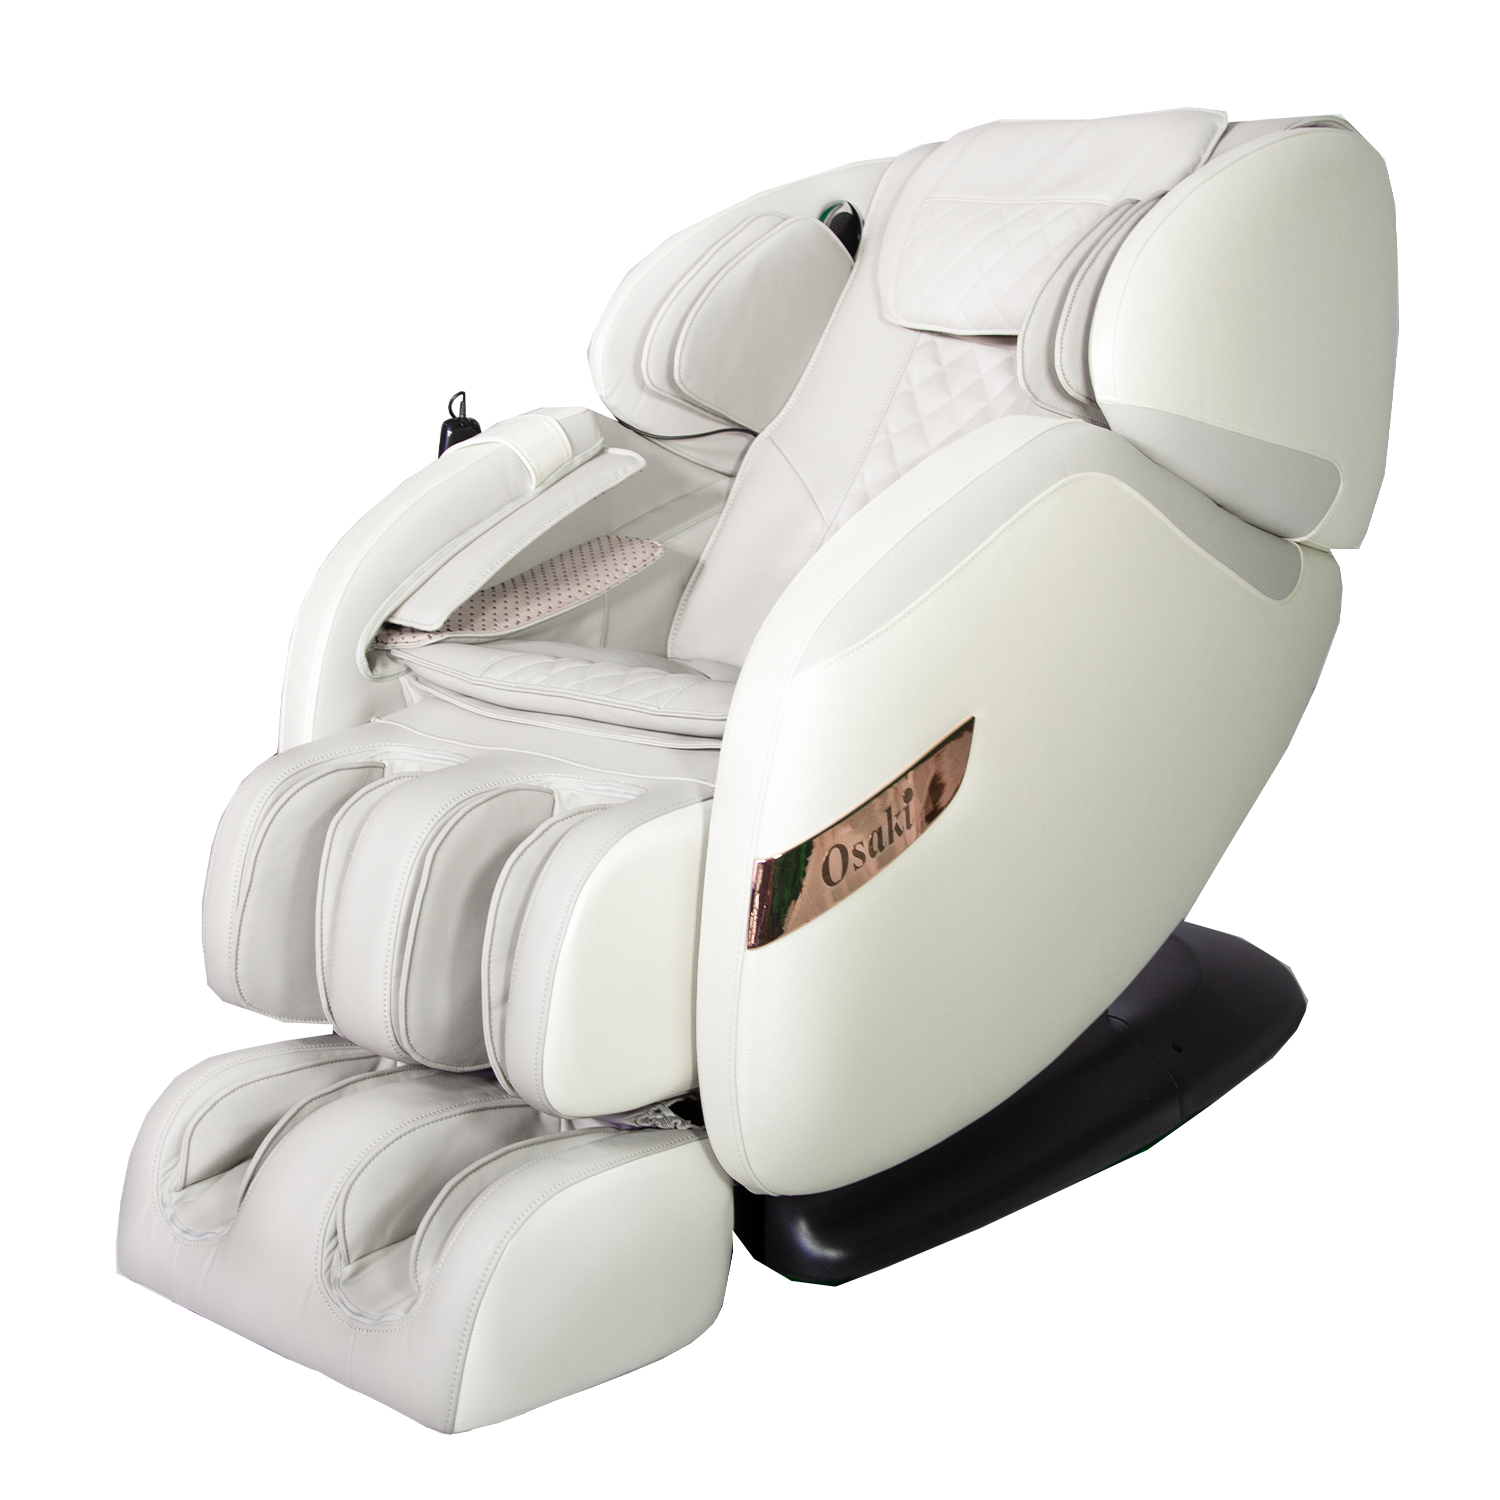 Osaki OS Champ Massage Chair Specifications